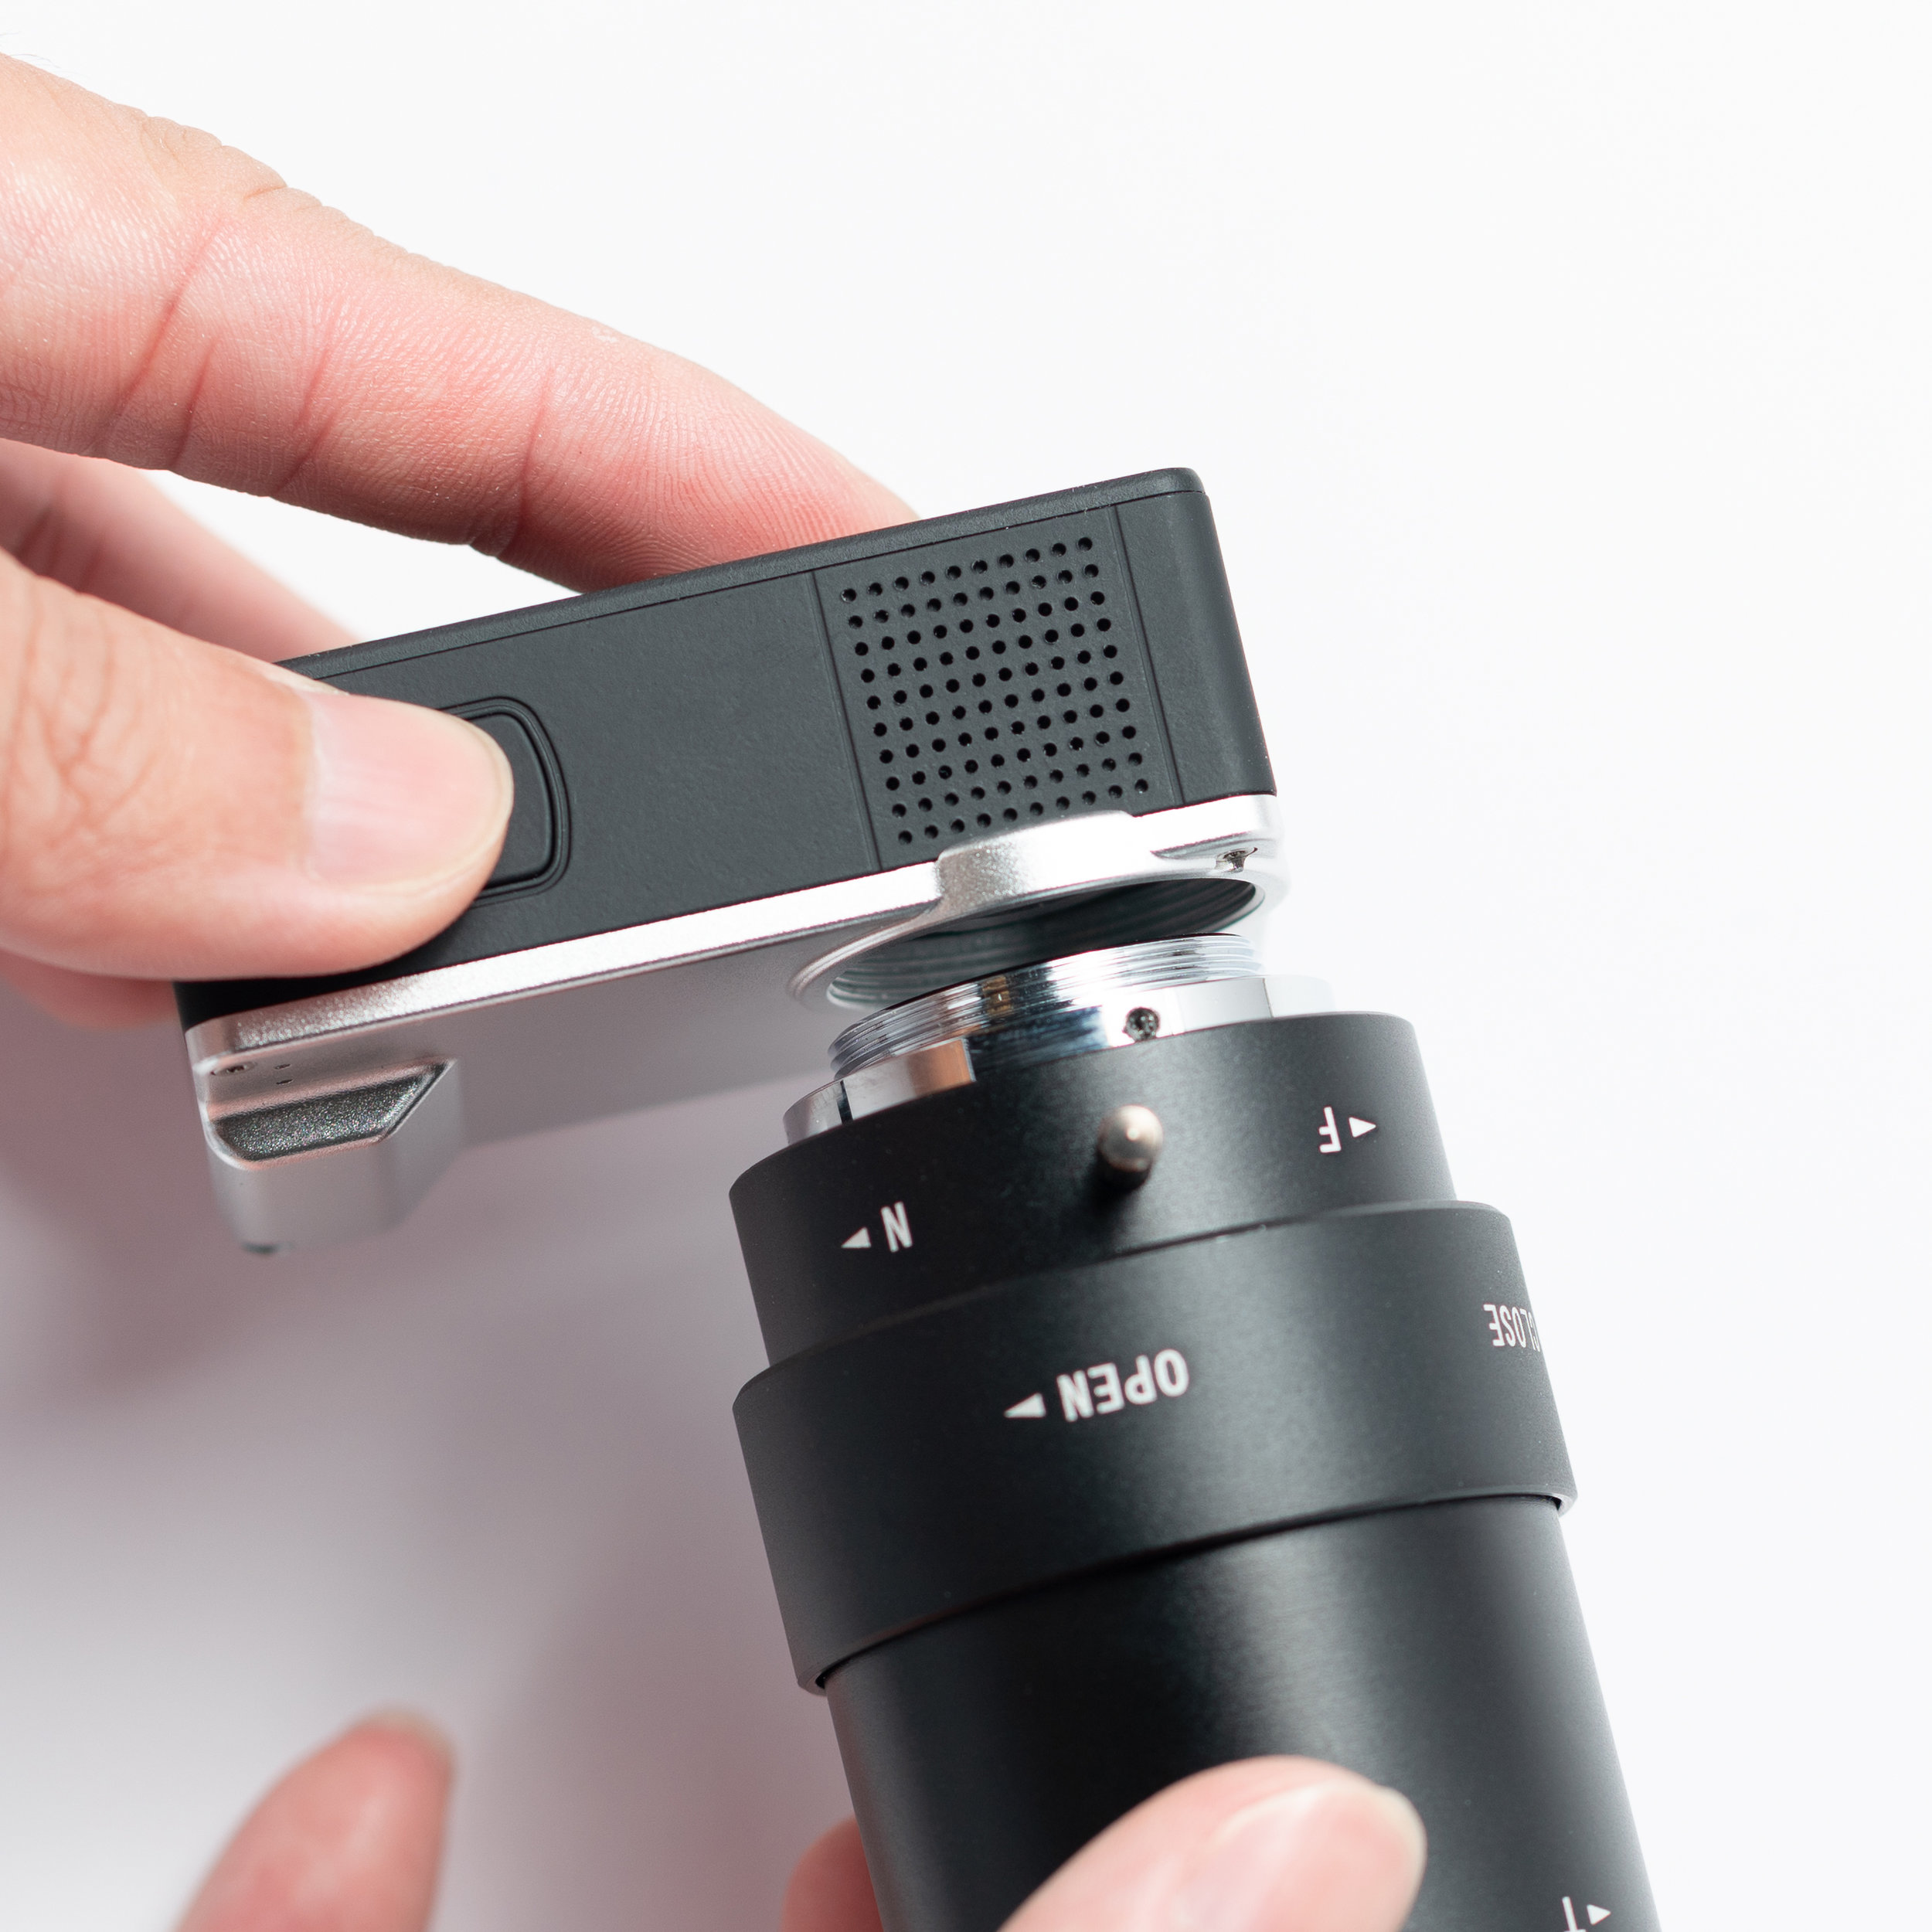 3. Ensure that the lens is parallel to the lens mount before twisting it clockwise to attach it to the camera.